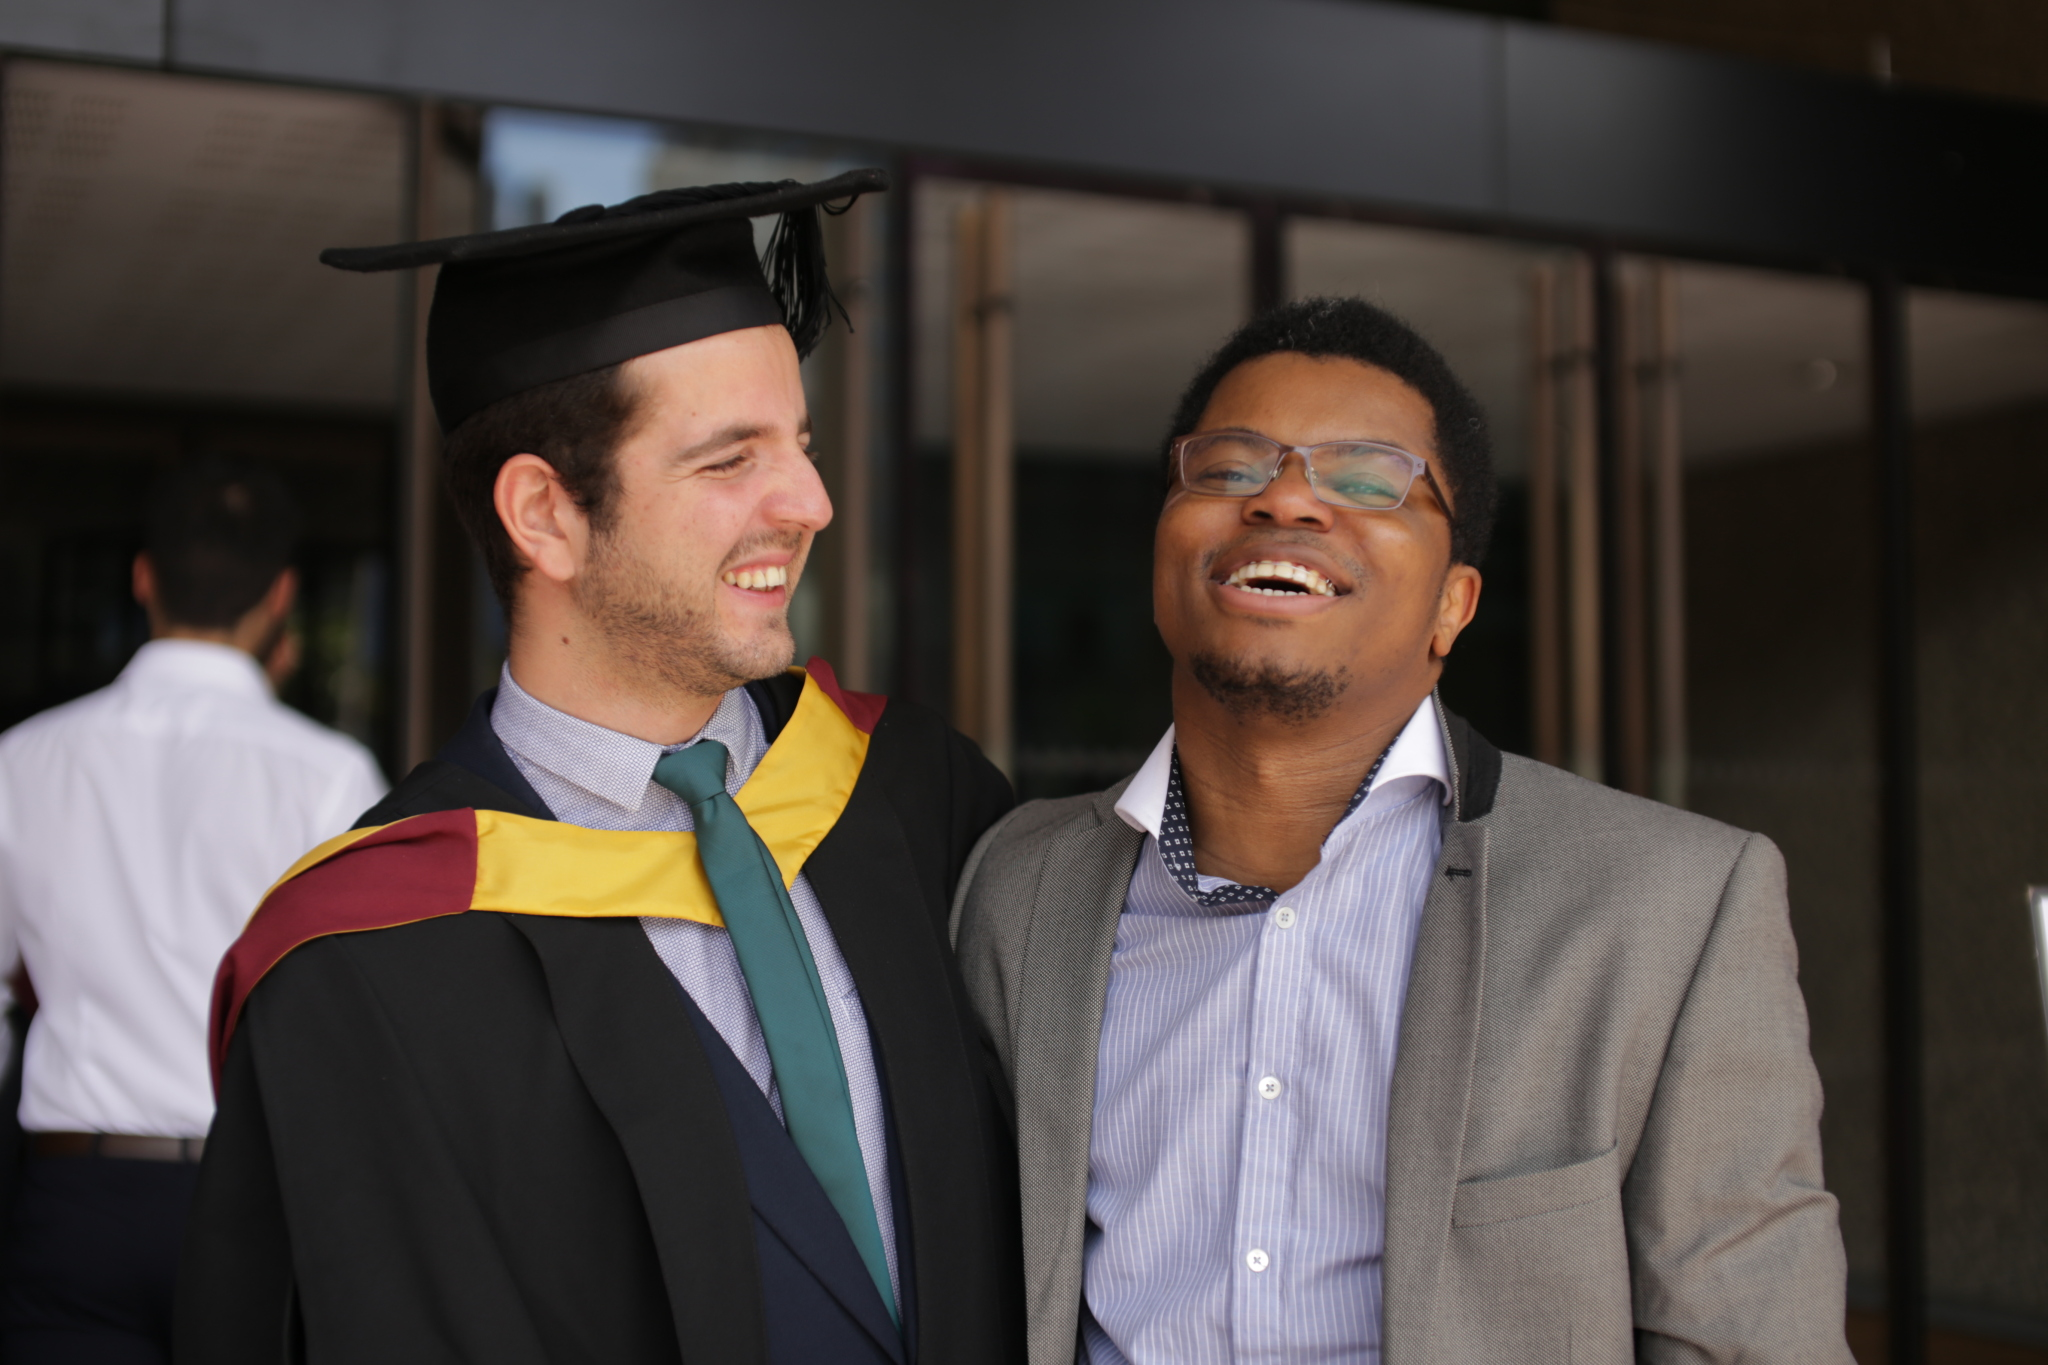 Mohamed Mehdi Mezhoud from Tunisia at his Graduation